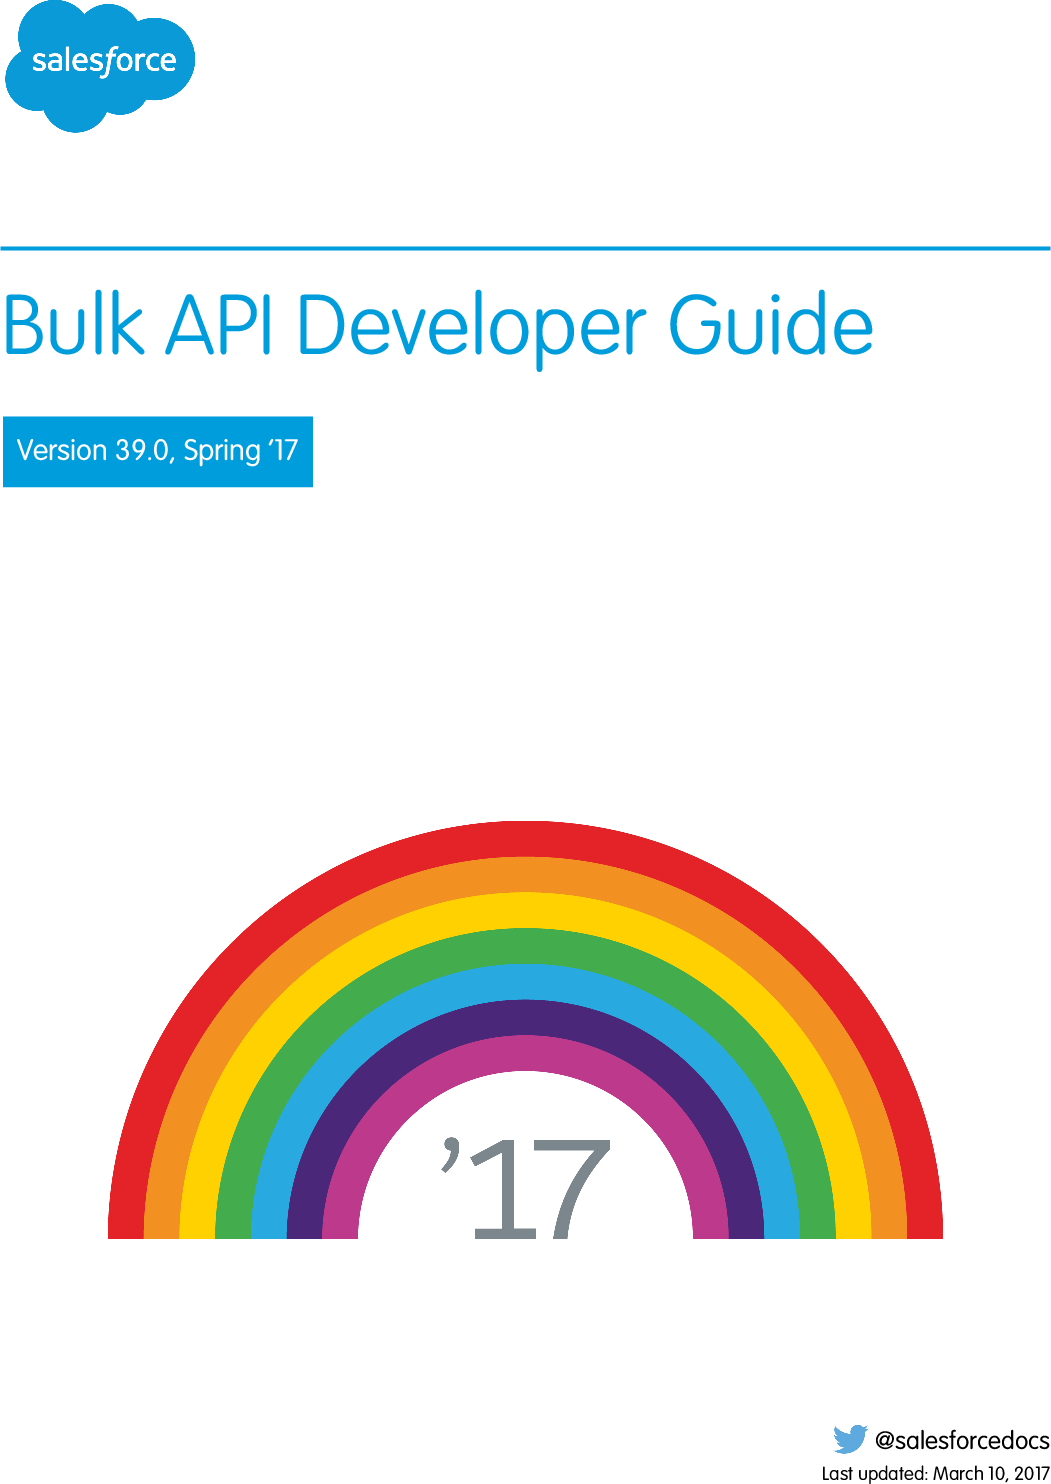 Bulk API Developer Guide